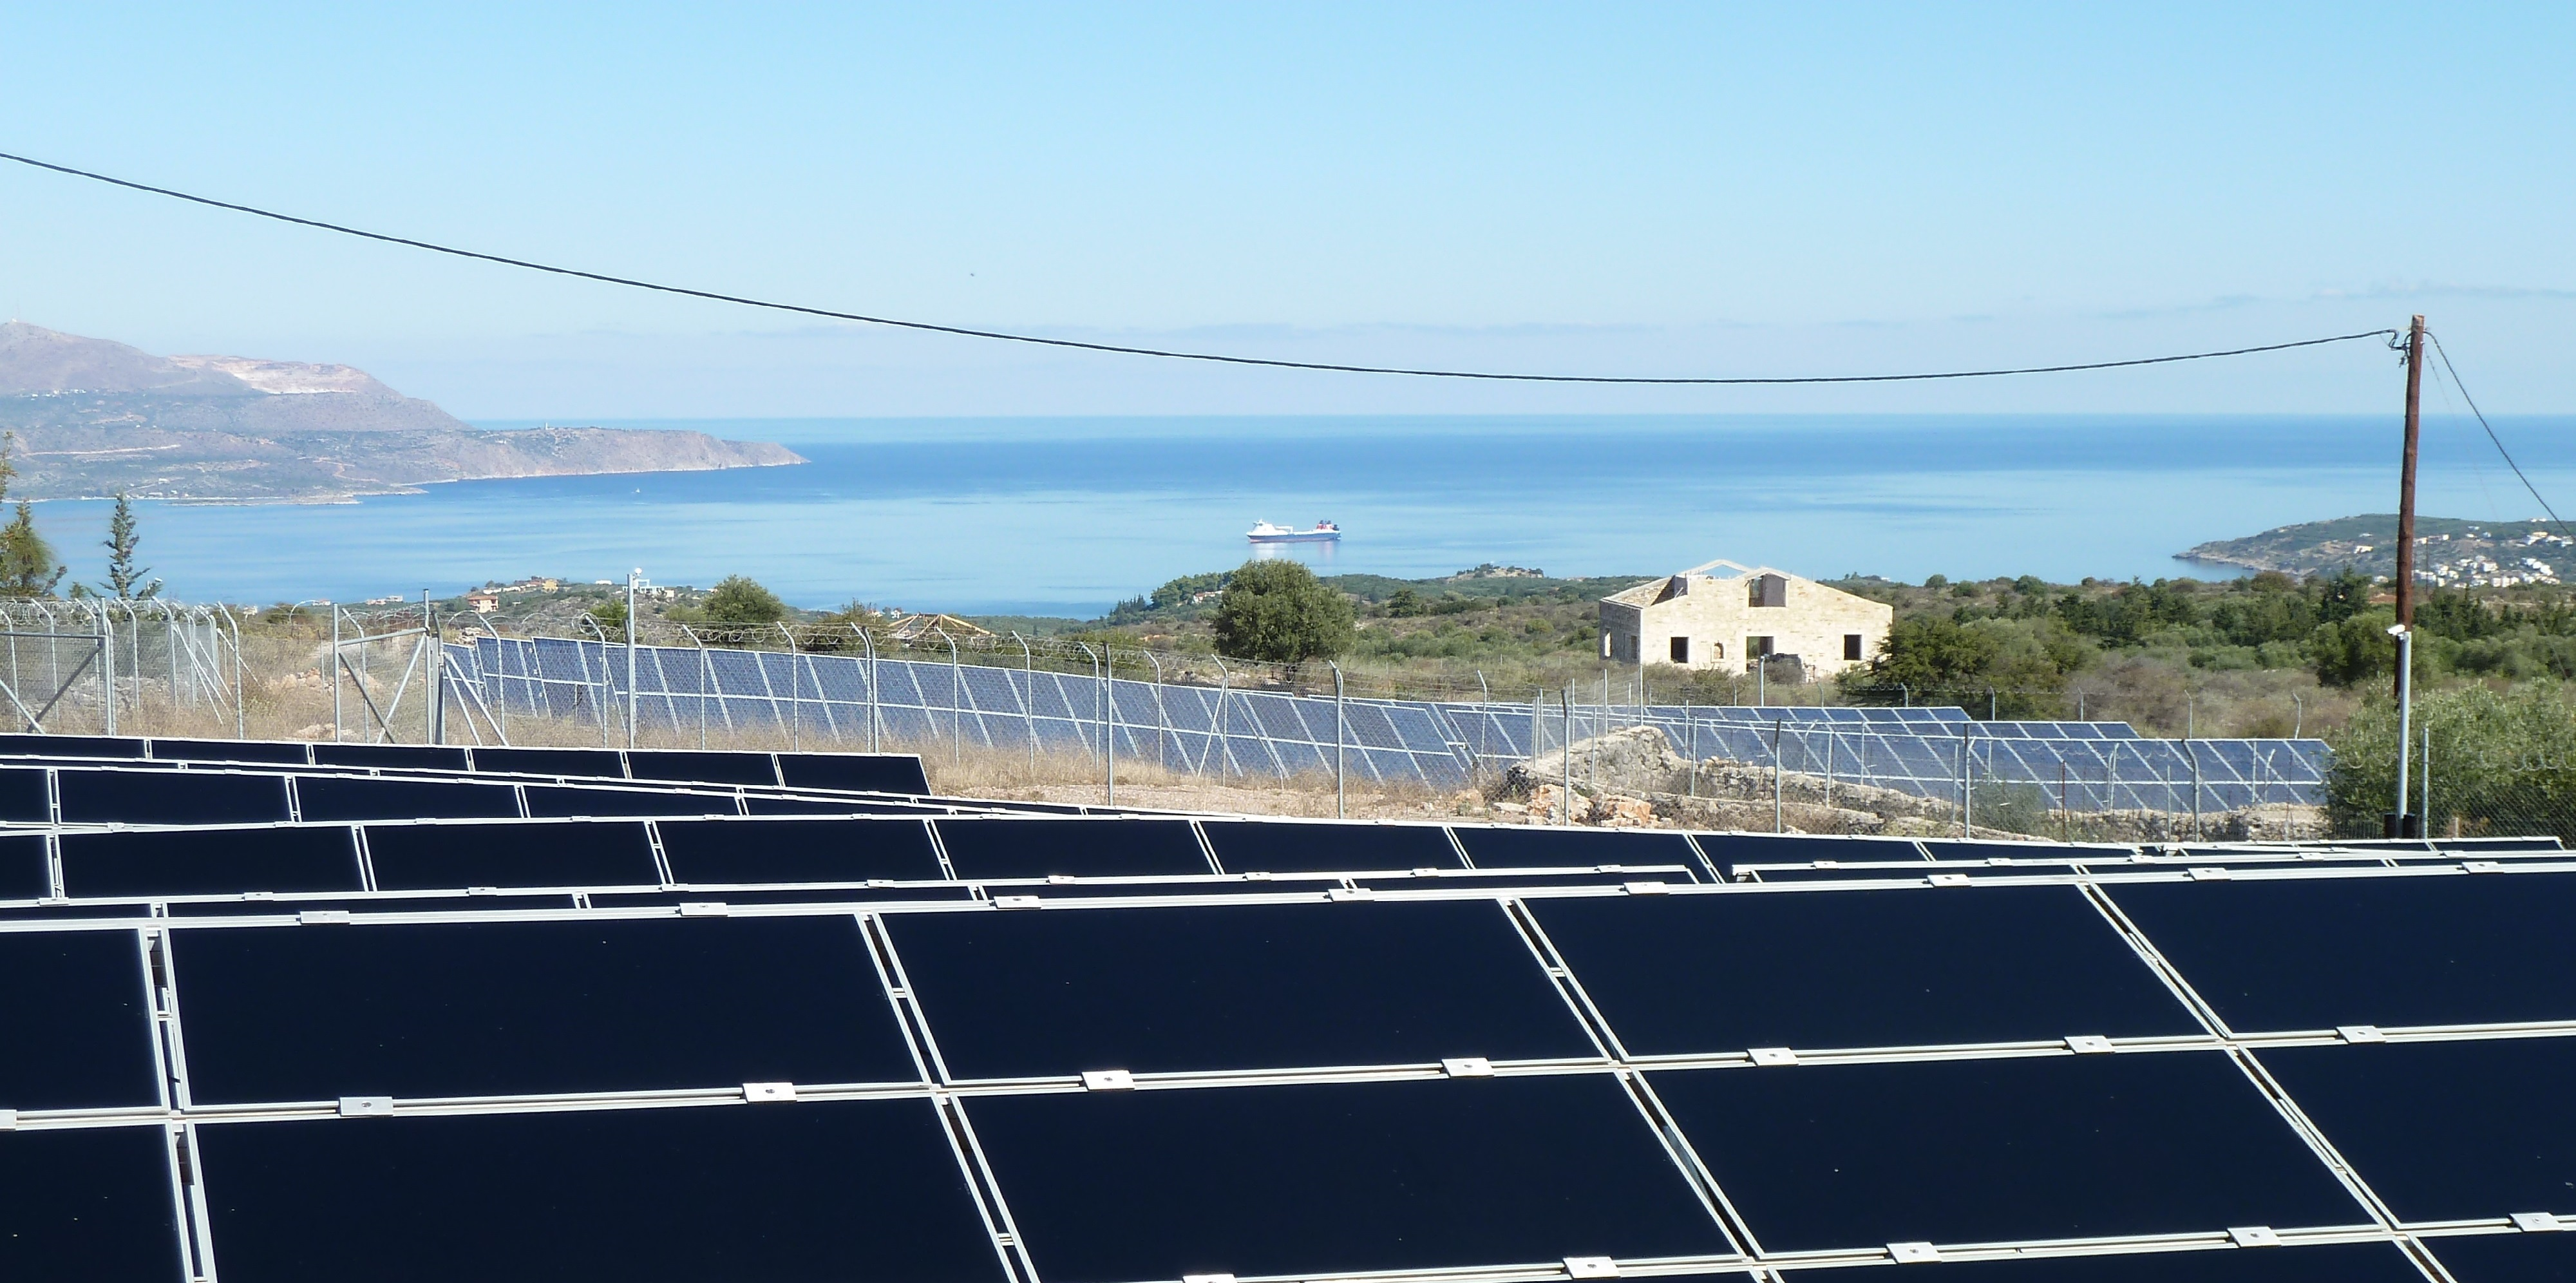 05.03.2019 – PV plants in Greece: Successful solar year 2018